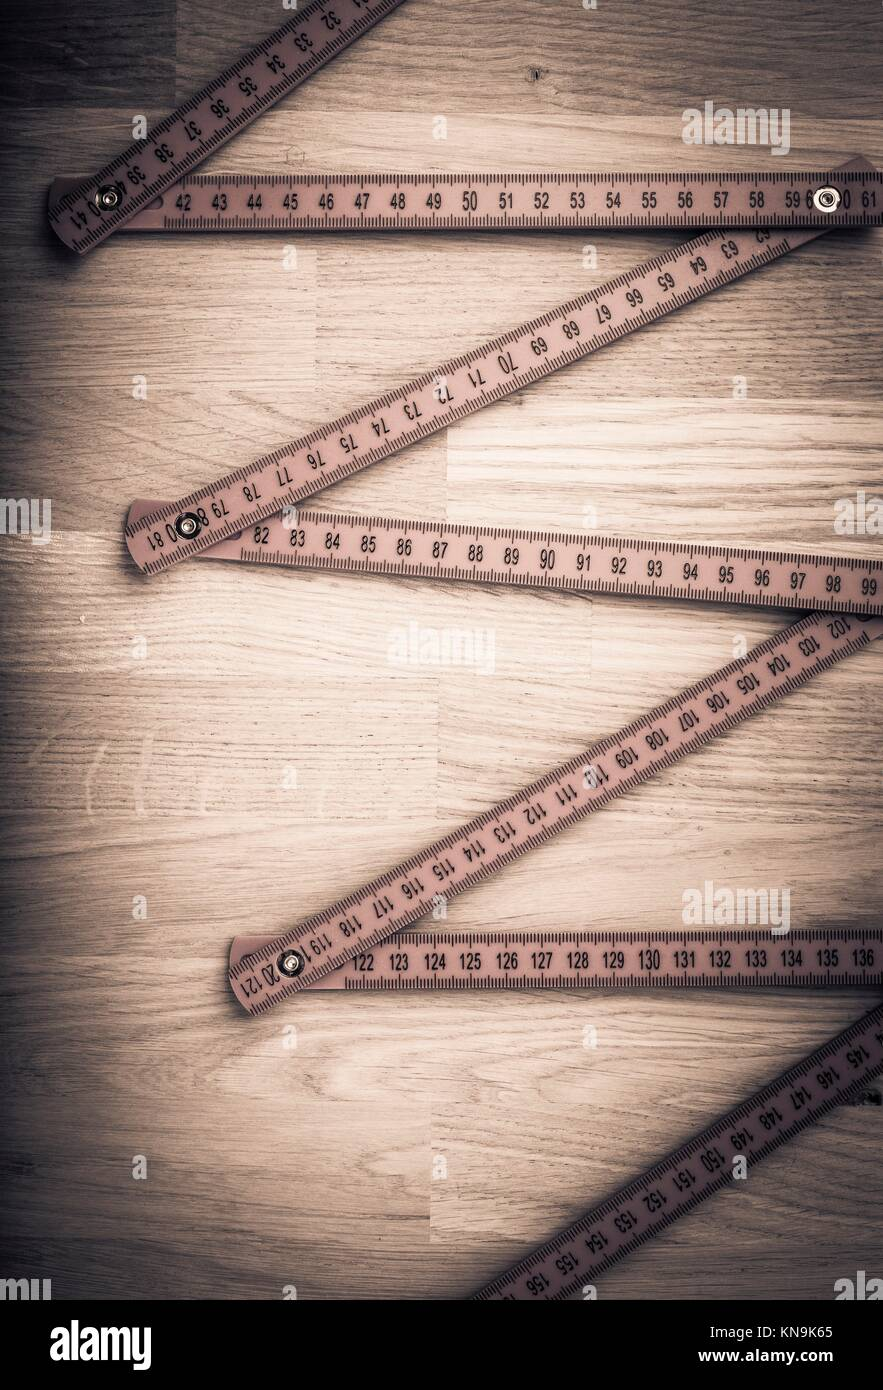 Folding rule on wooden table. Concept image of measurement, construction and work tool. - Stock Image